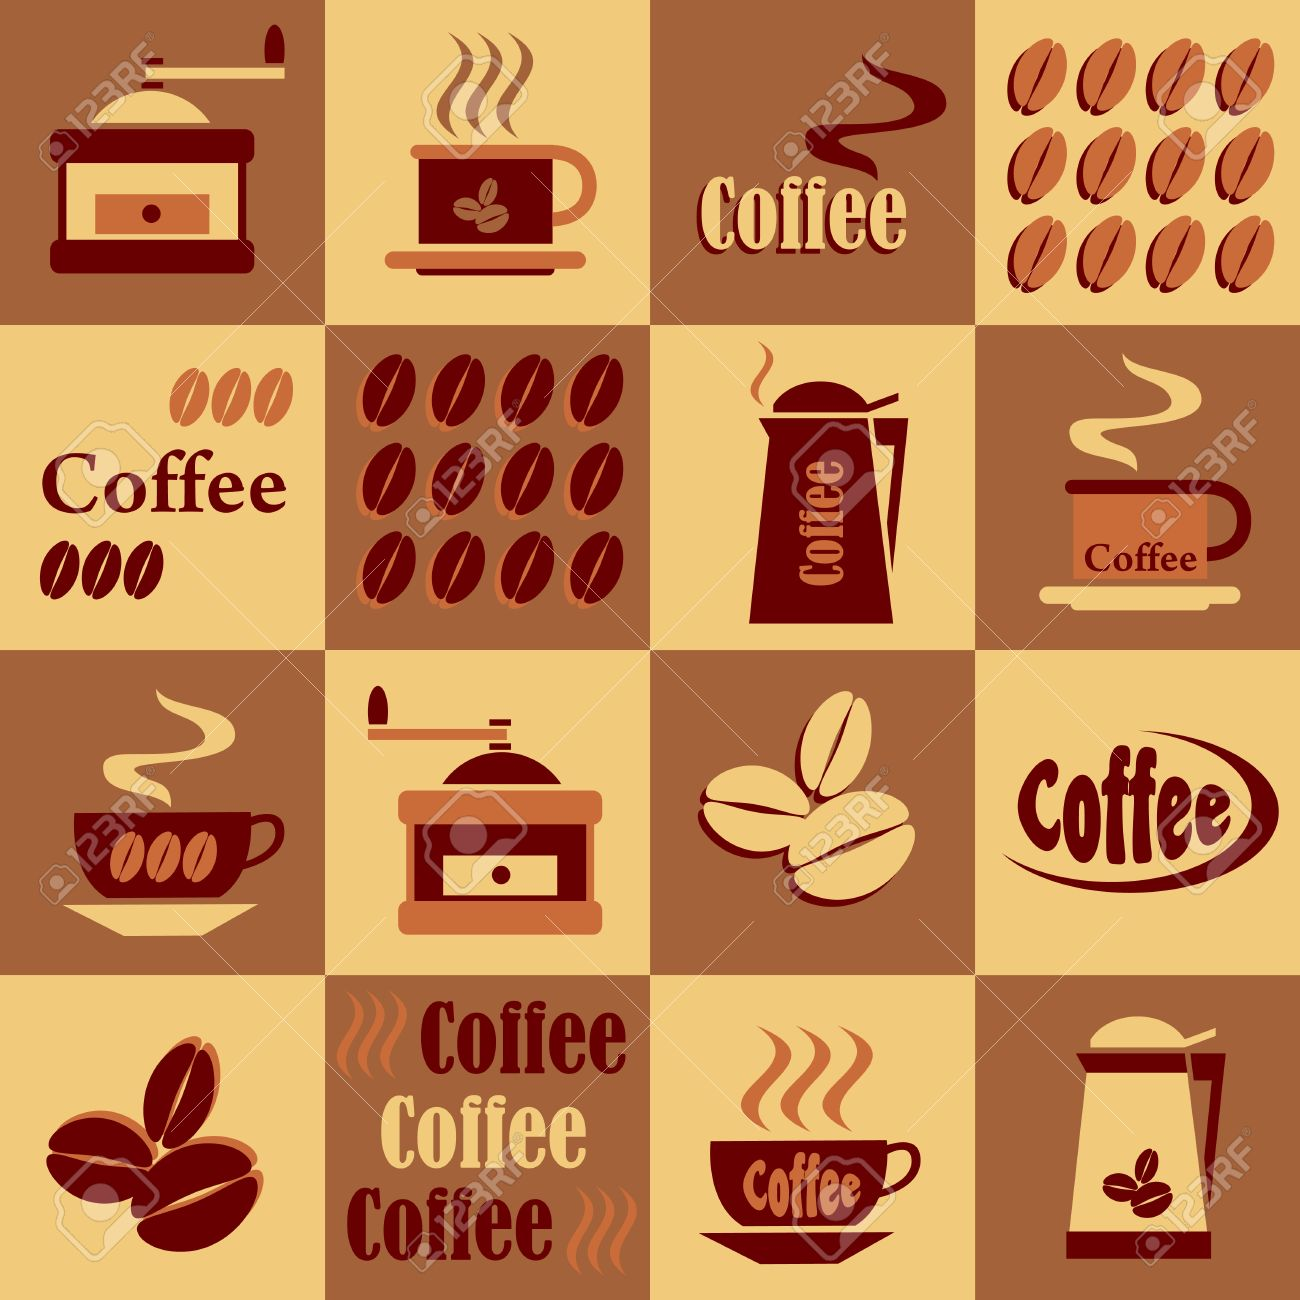 Set Of Coffee On A Checkerboard Background In Shades Of Brown.